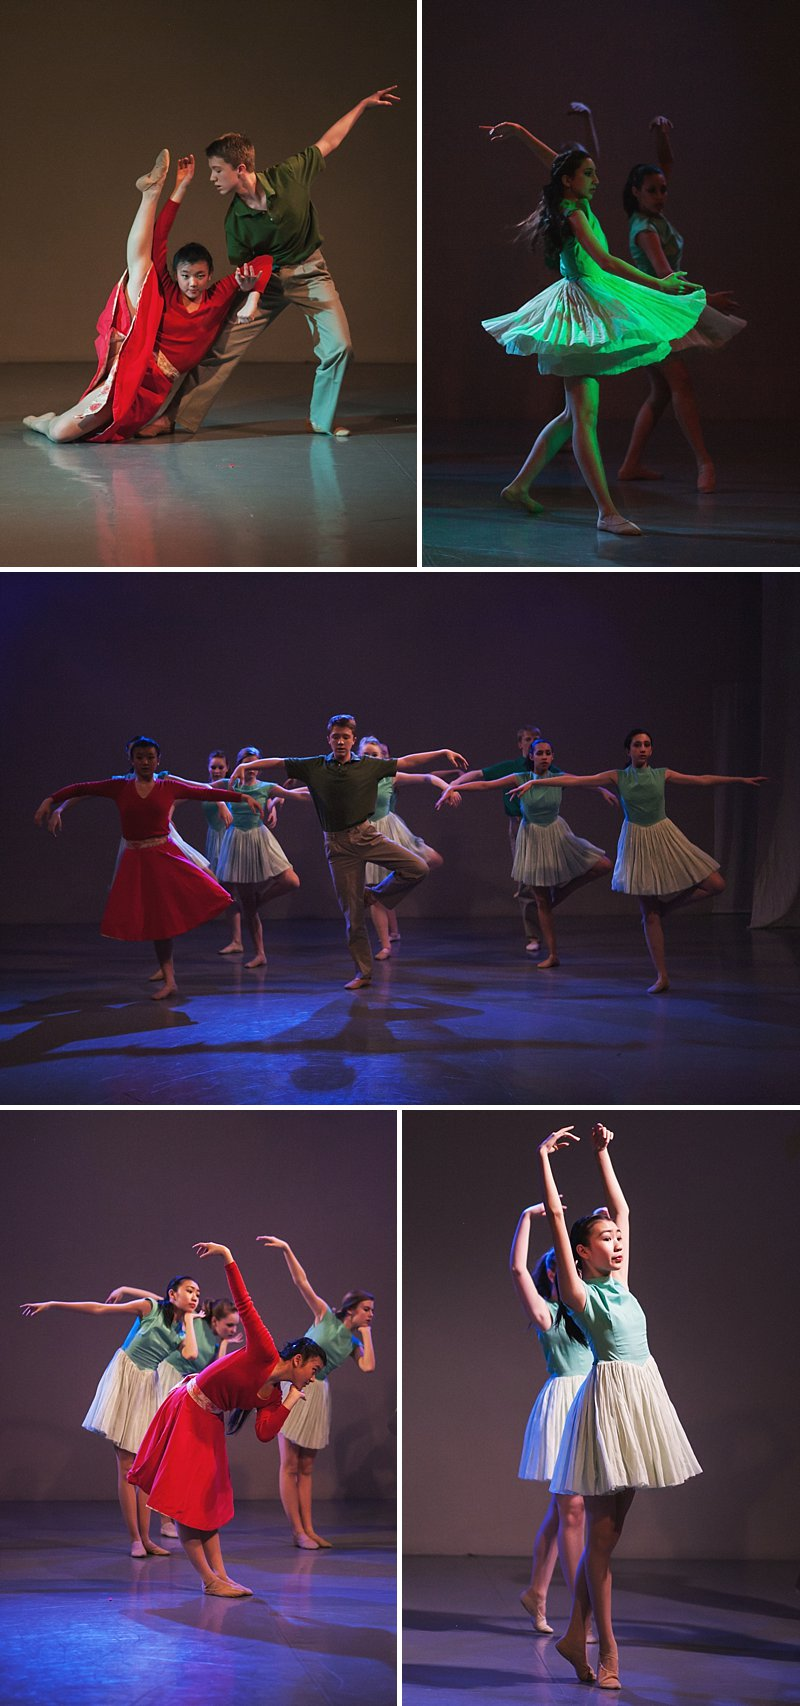 colorado dance, colorado dance schools, colorado conservatory of dance, dance photography, dance, educational dance